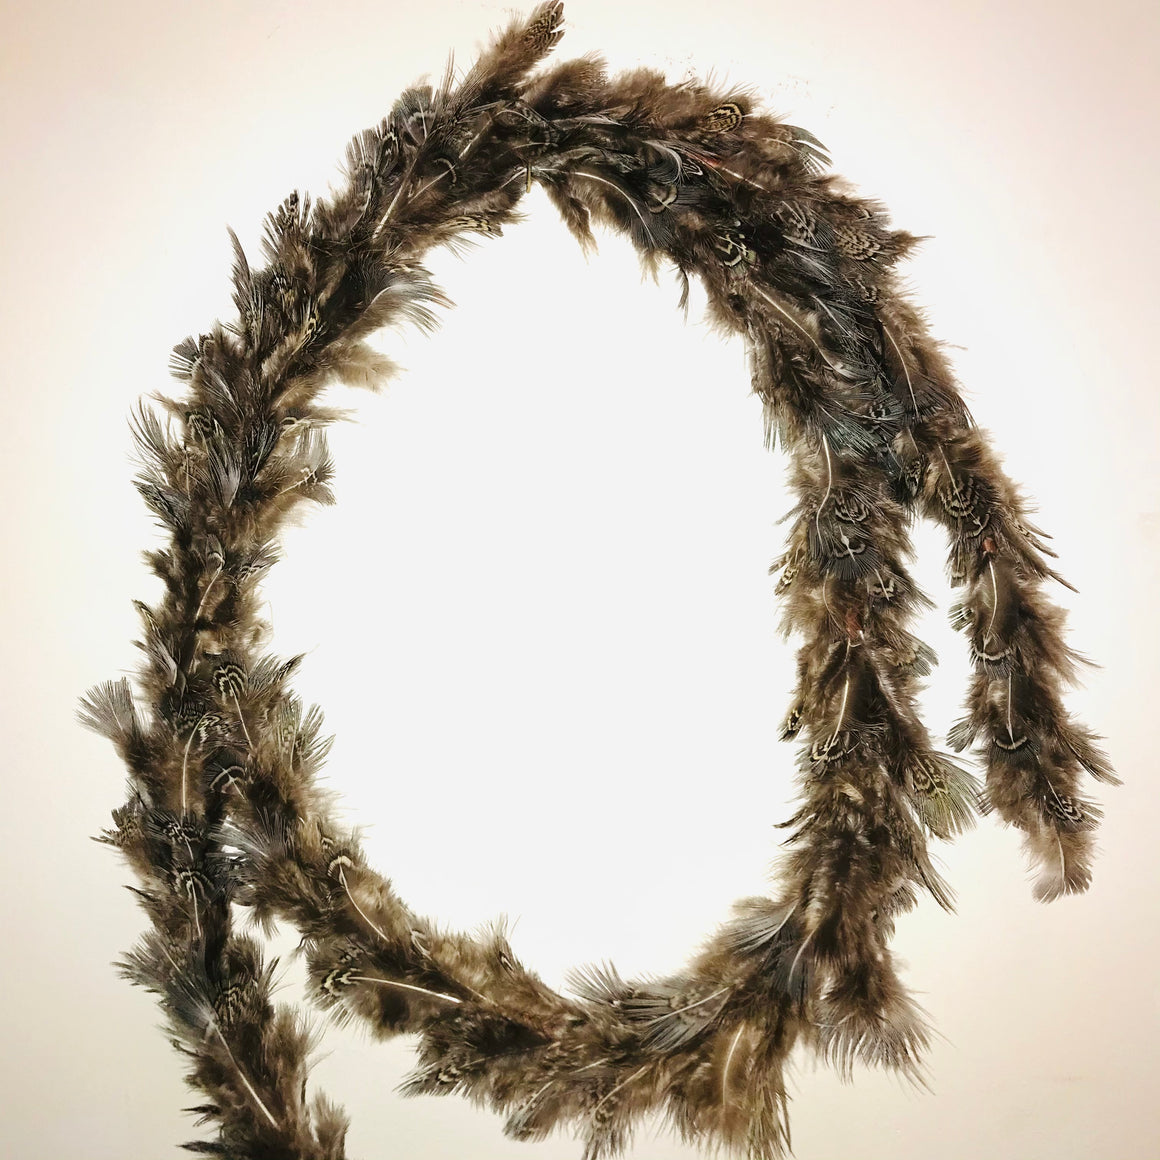 Pheasant Feather Garland Grey and Brown